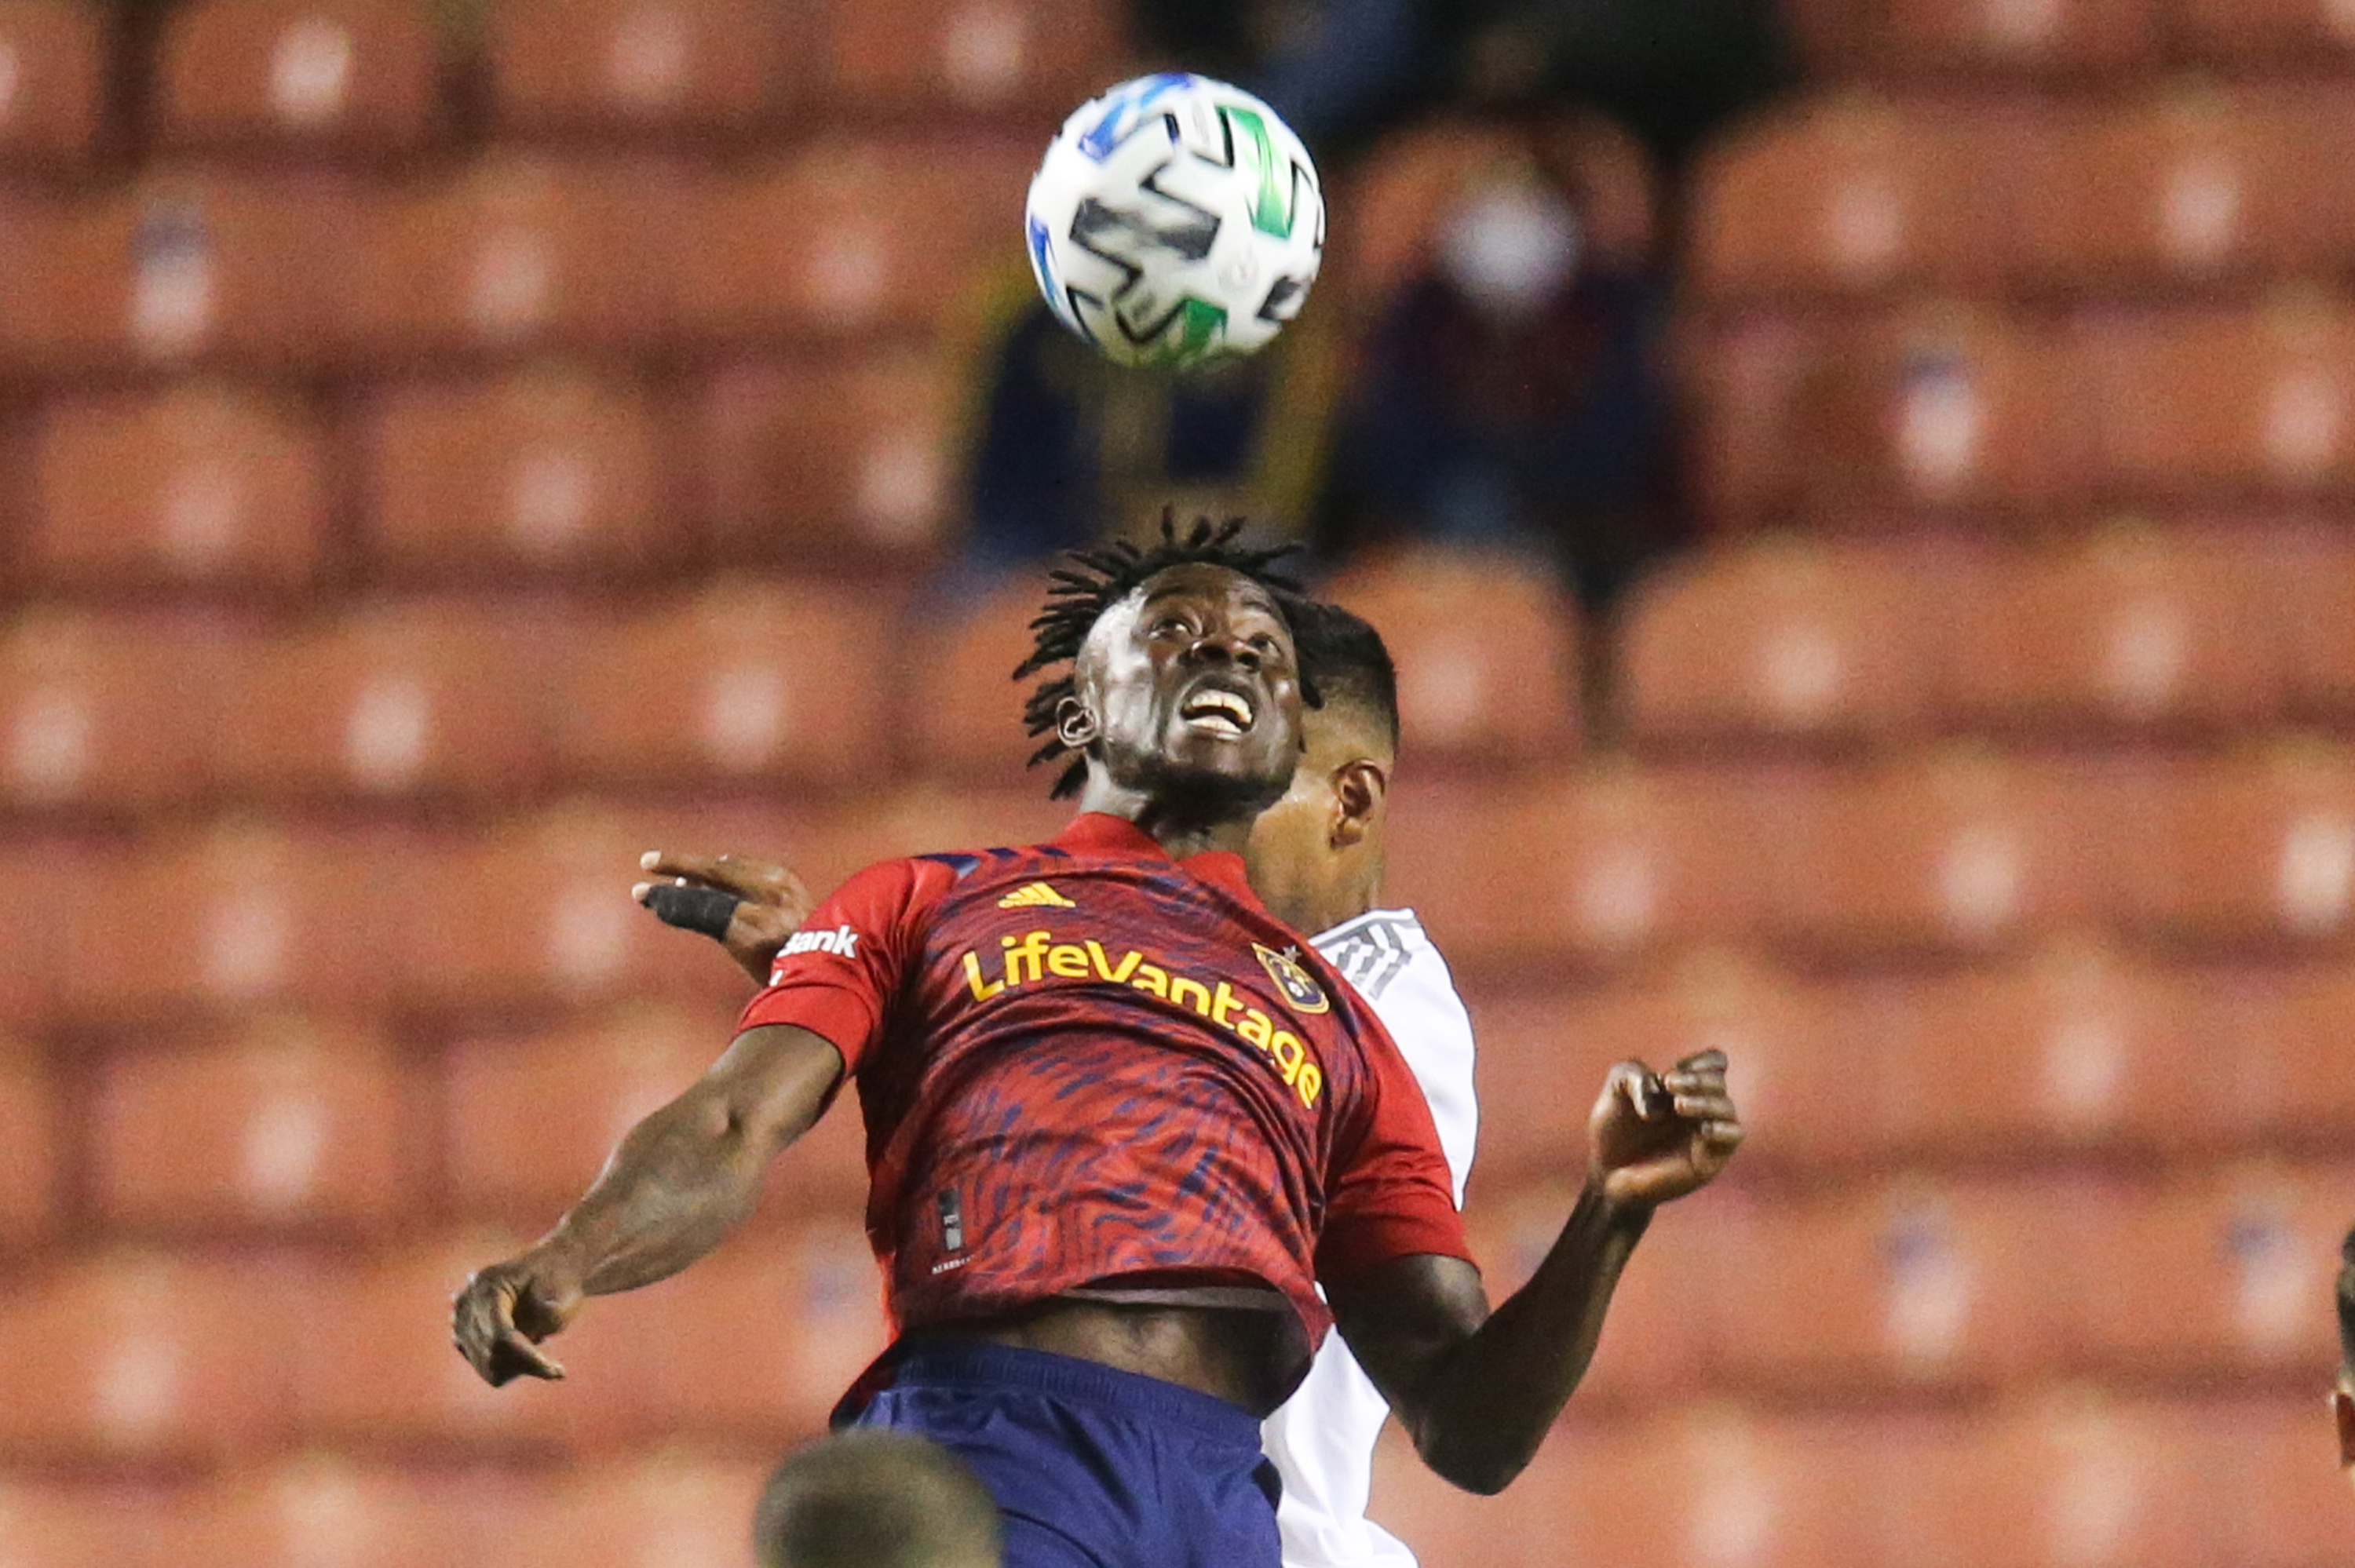 Real Salt Lake forward Sam Johnson (50) jumps for a header during a MLS soccer game at Rio Tinto Stadium in Sandy on Sunday, Oct. 4, 2020.